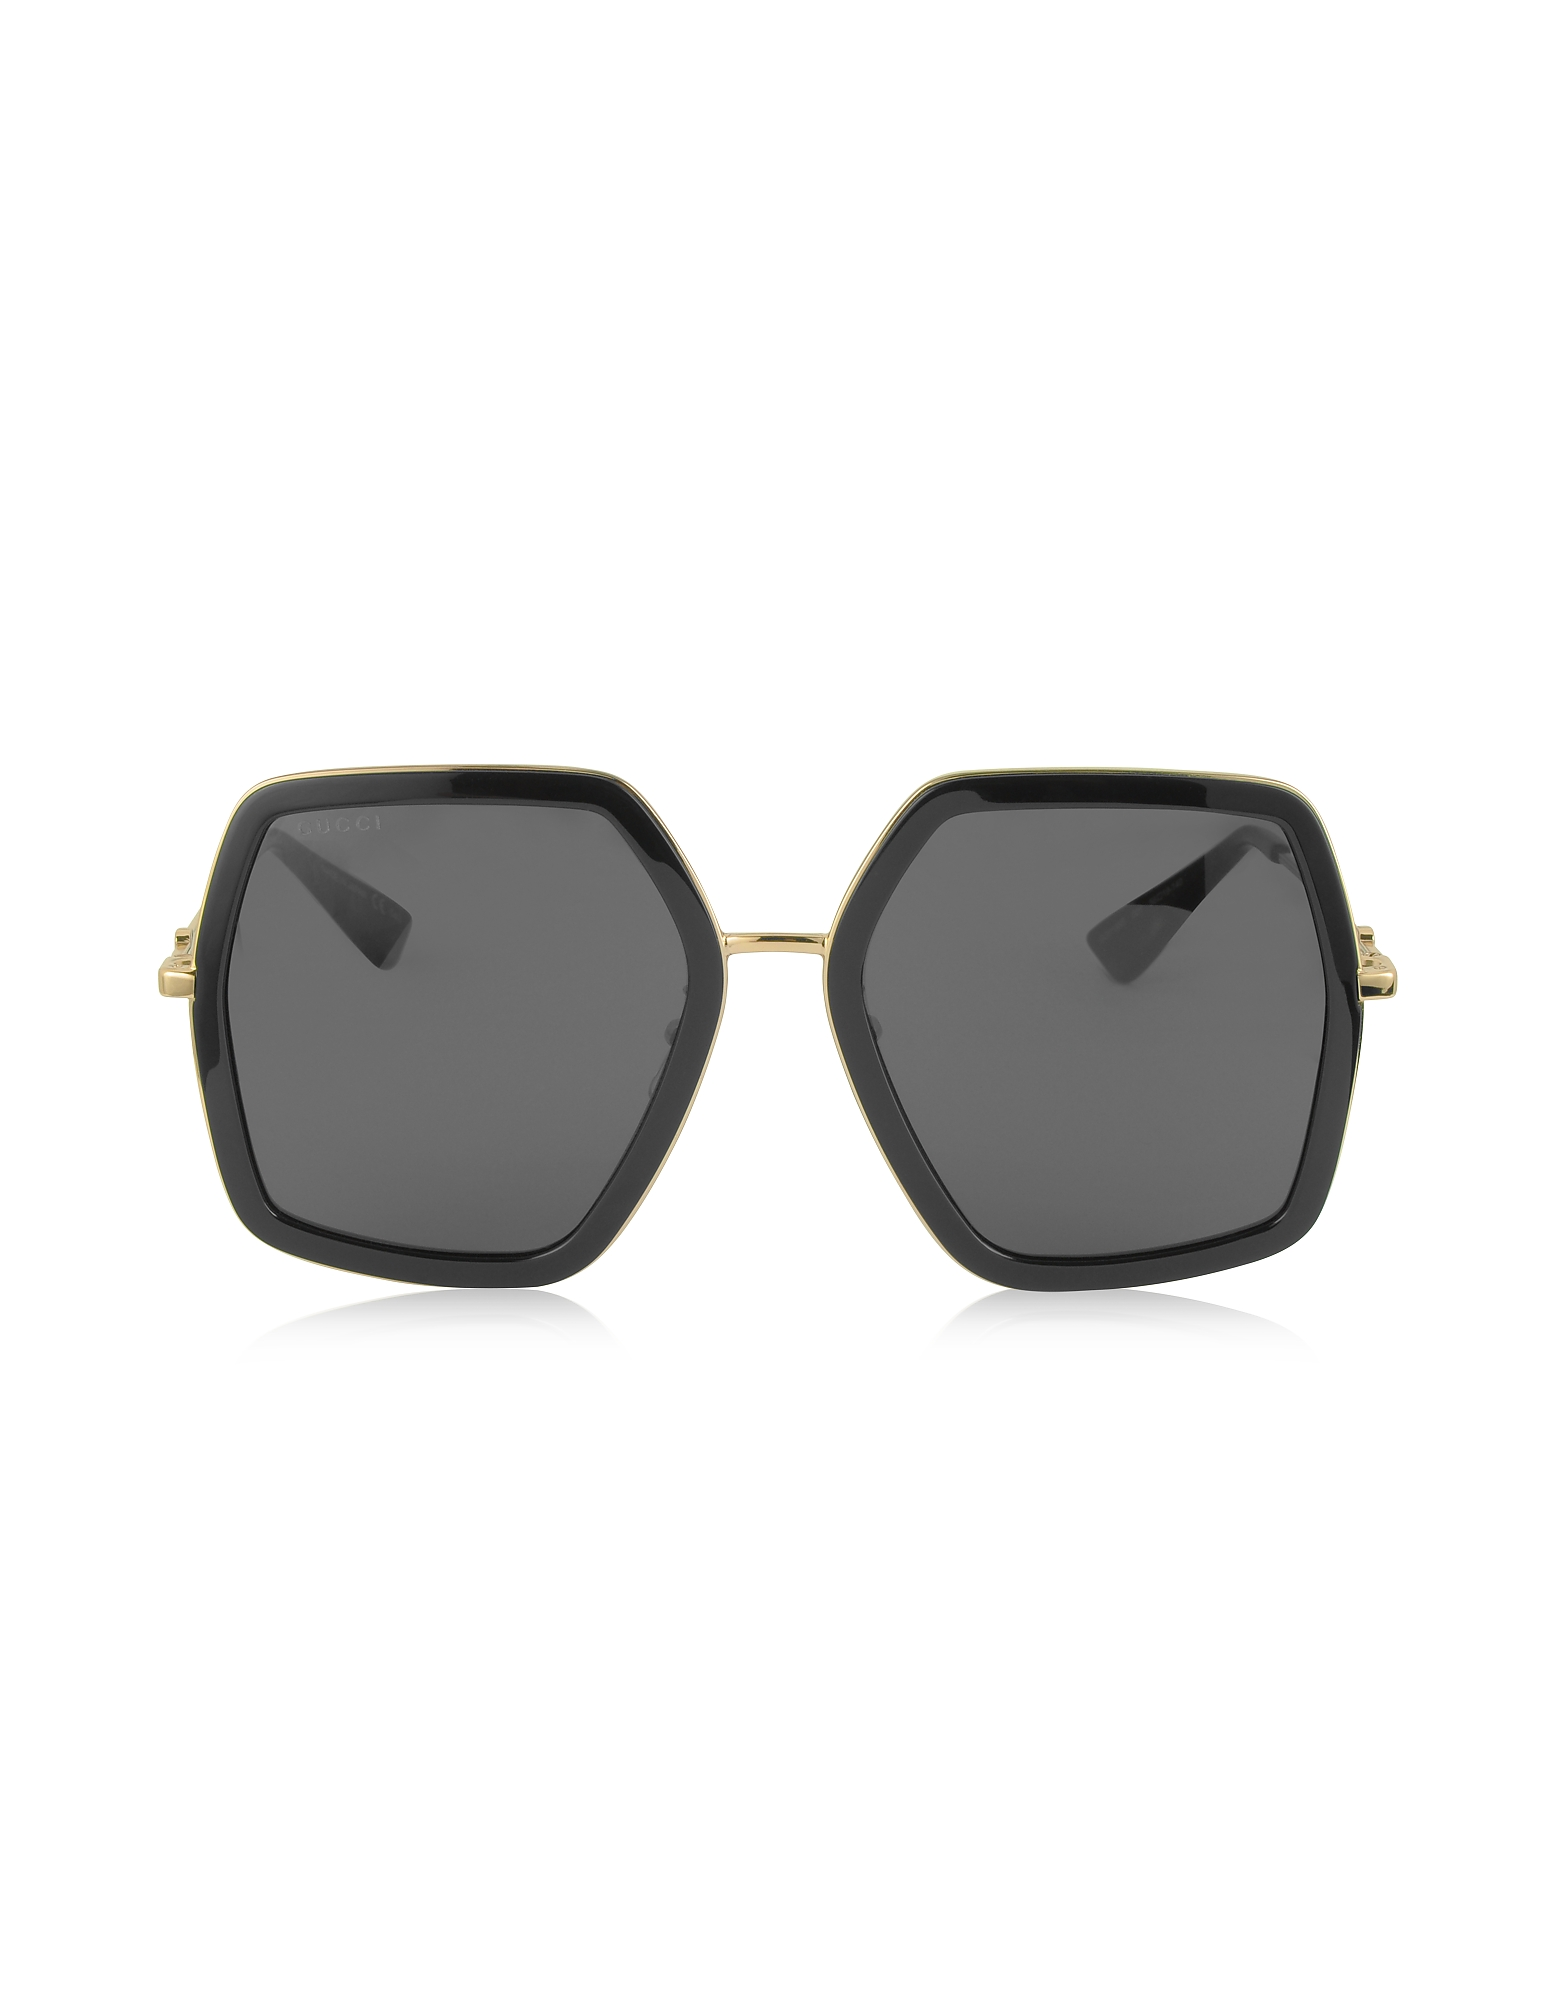 Gucci Sunglasses, GG0106S 001 Black Acetate and Gold Metal Square Oversized Women's Sunglasses